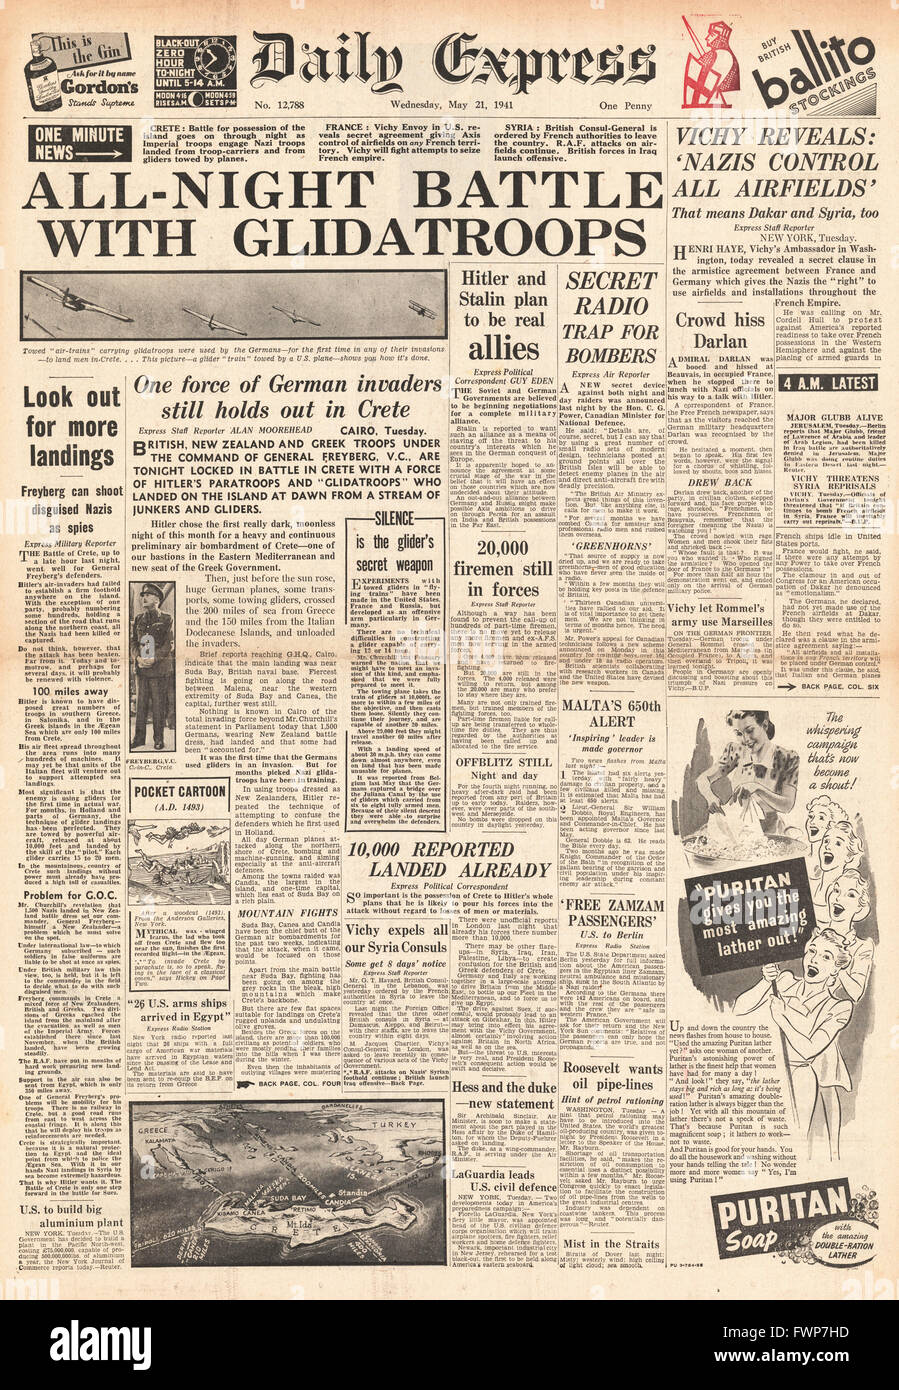 1941 front page Daily Express German forces invade Crete - Stock Image